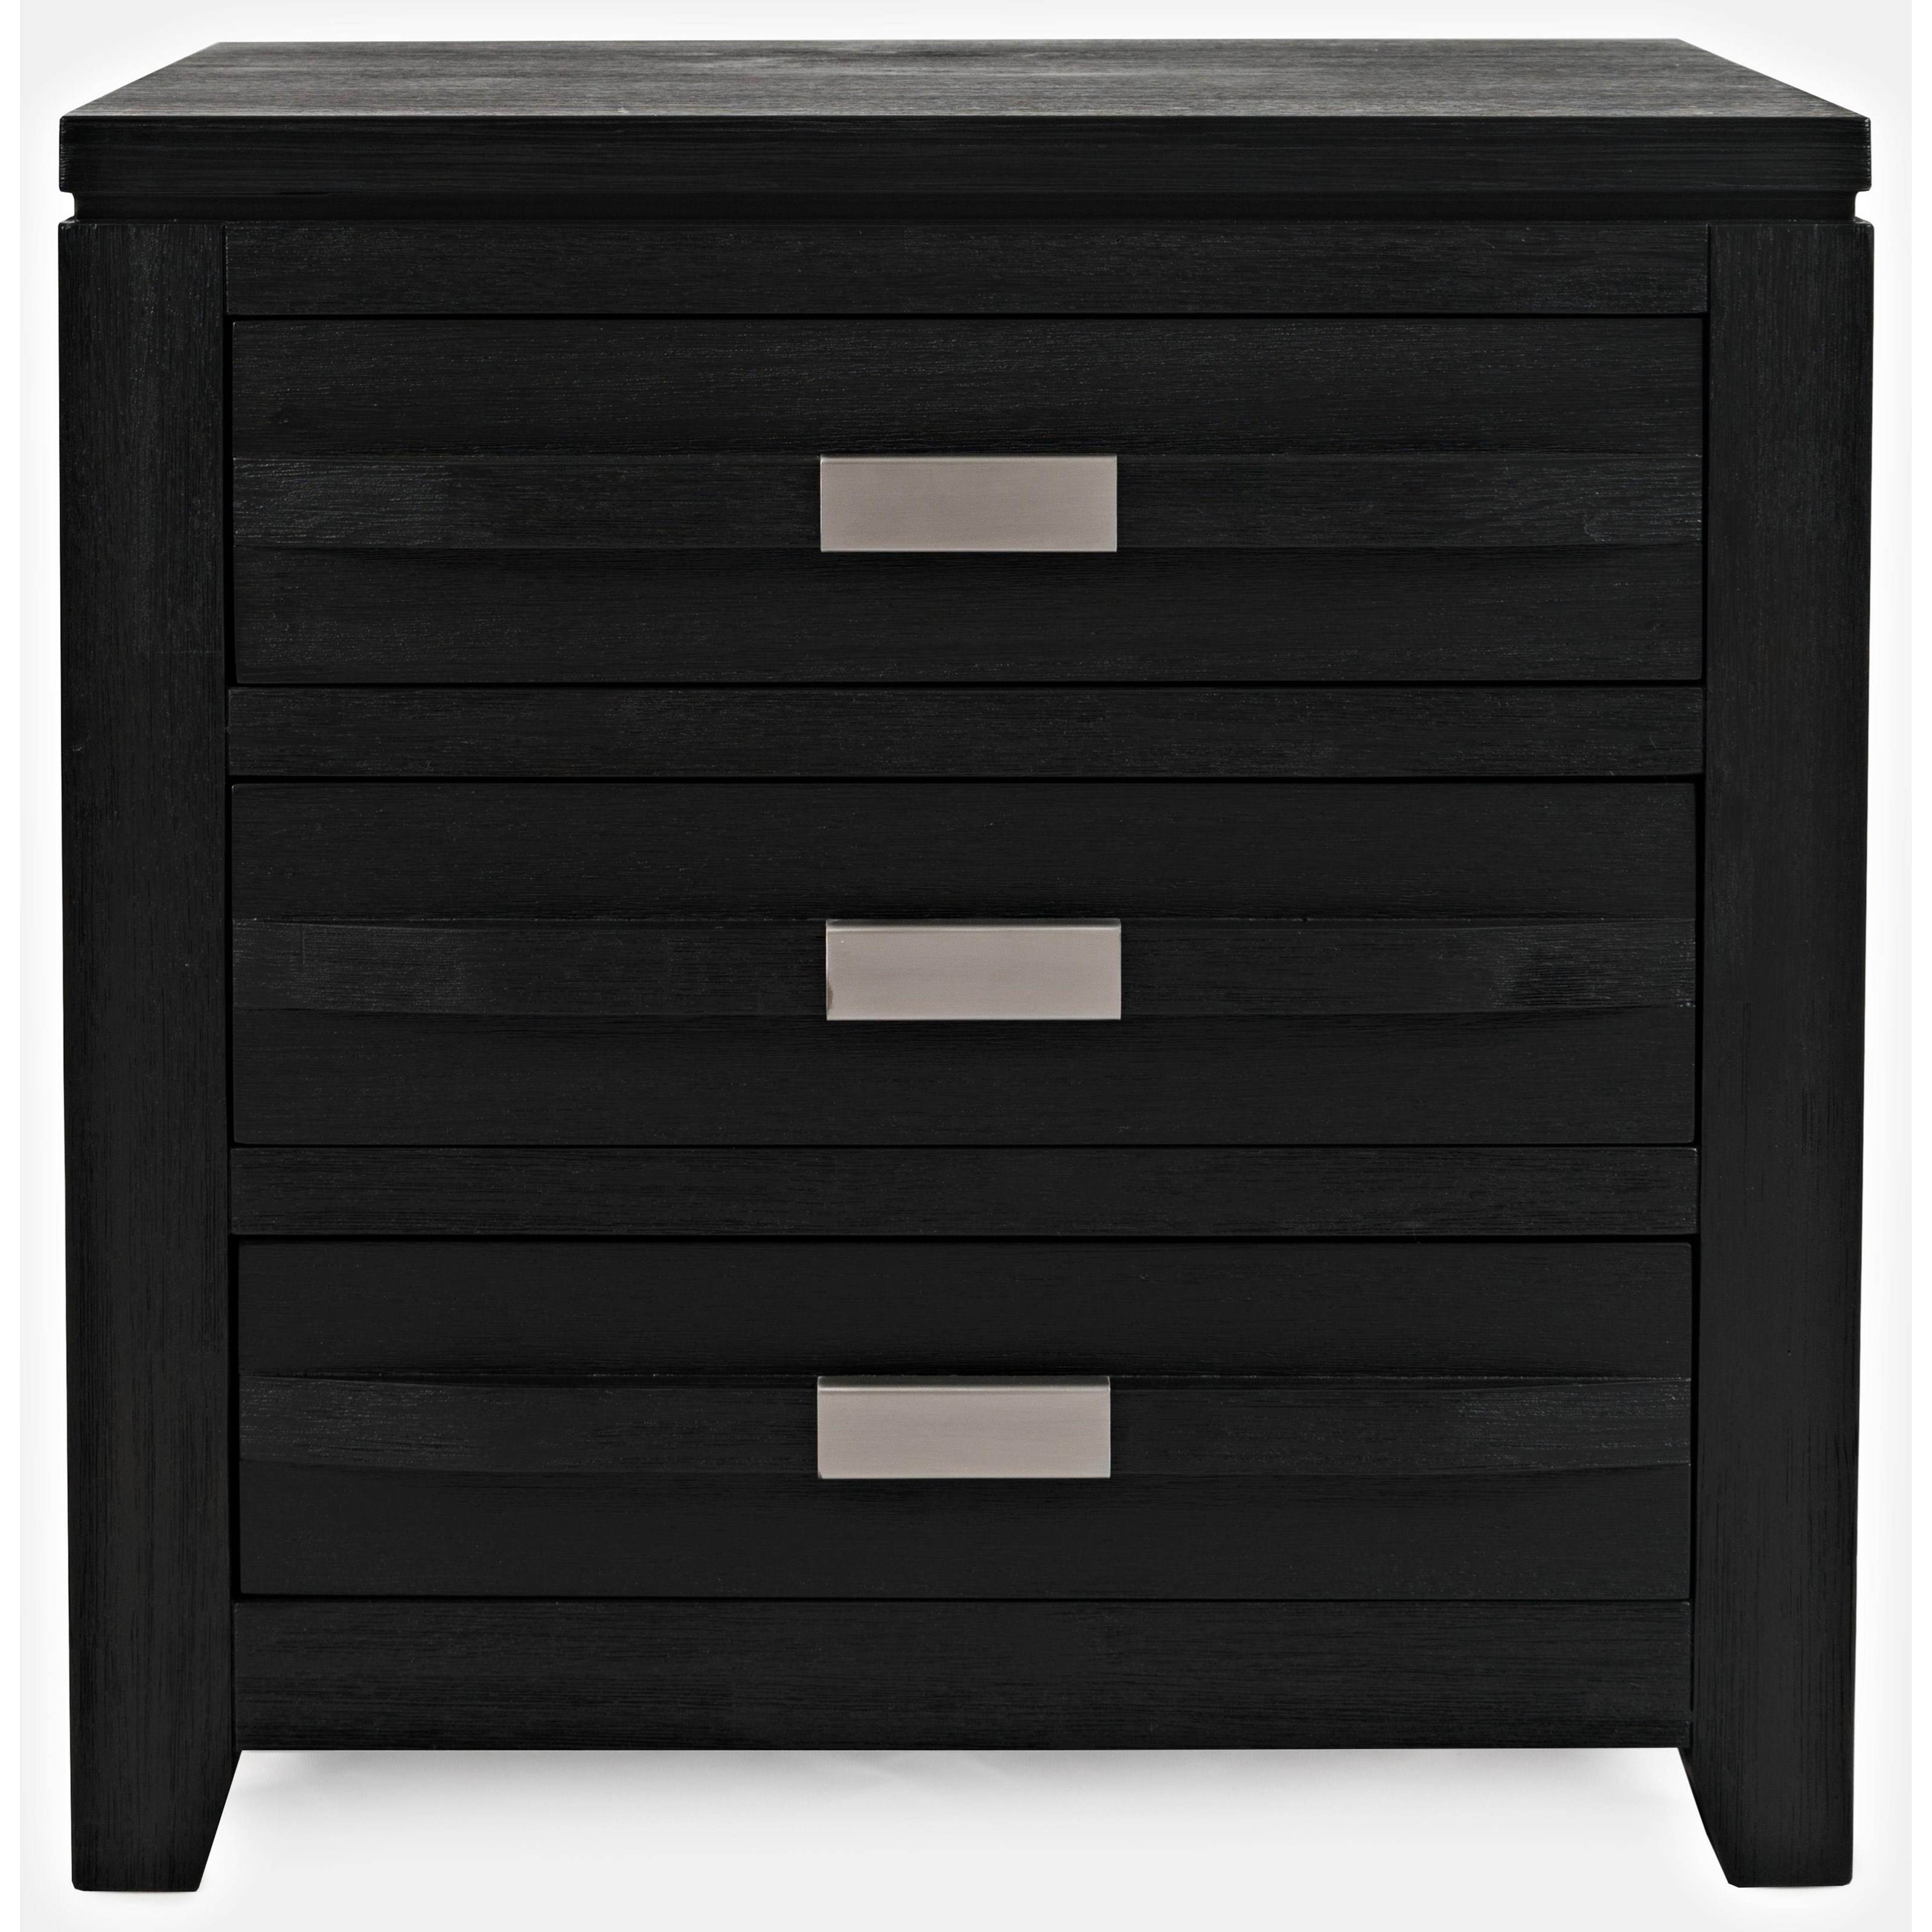 Altamonte 3 Drawer Power Nightstand by Jofran at Pilgrim Furniture City